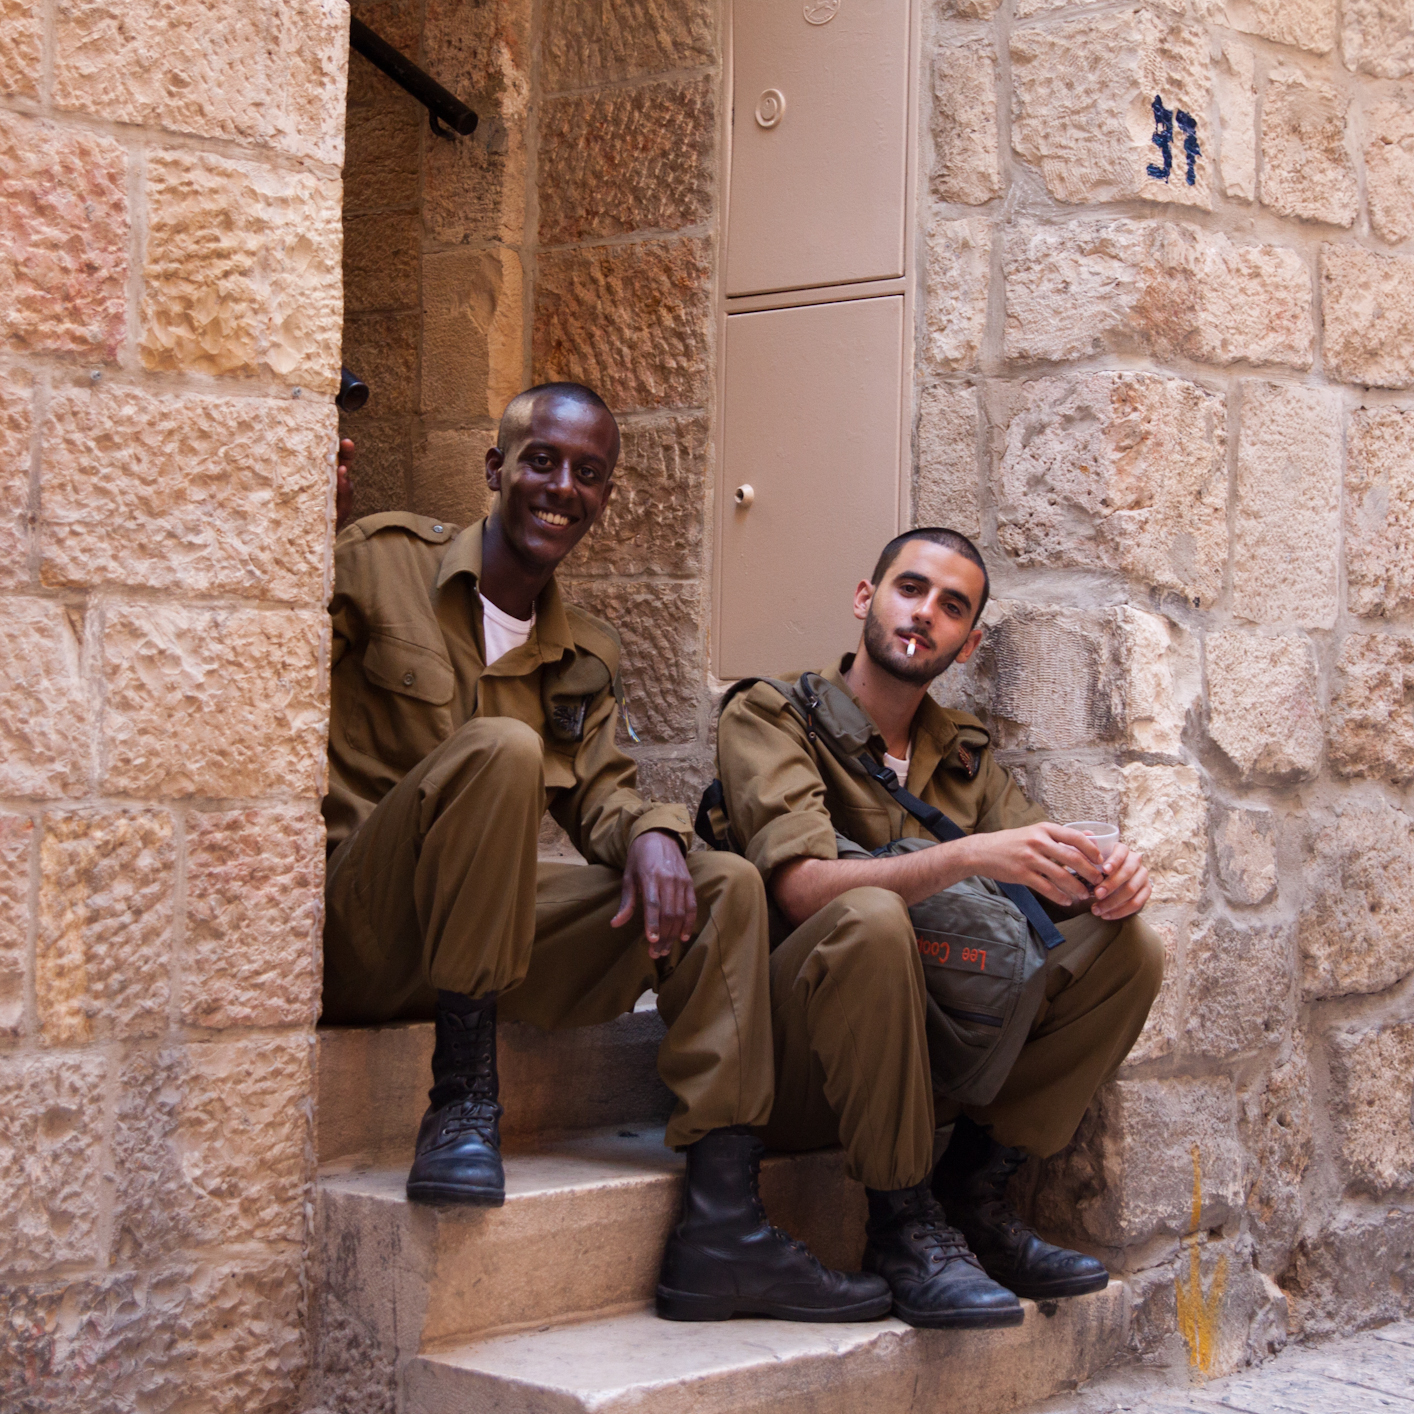 Two Israeli Defense Force members asked for a picture